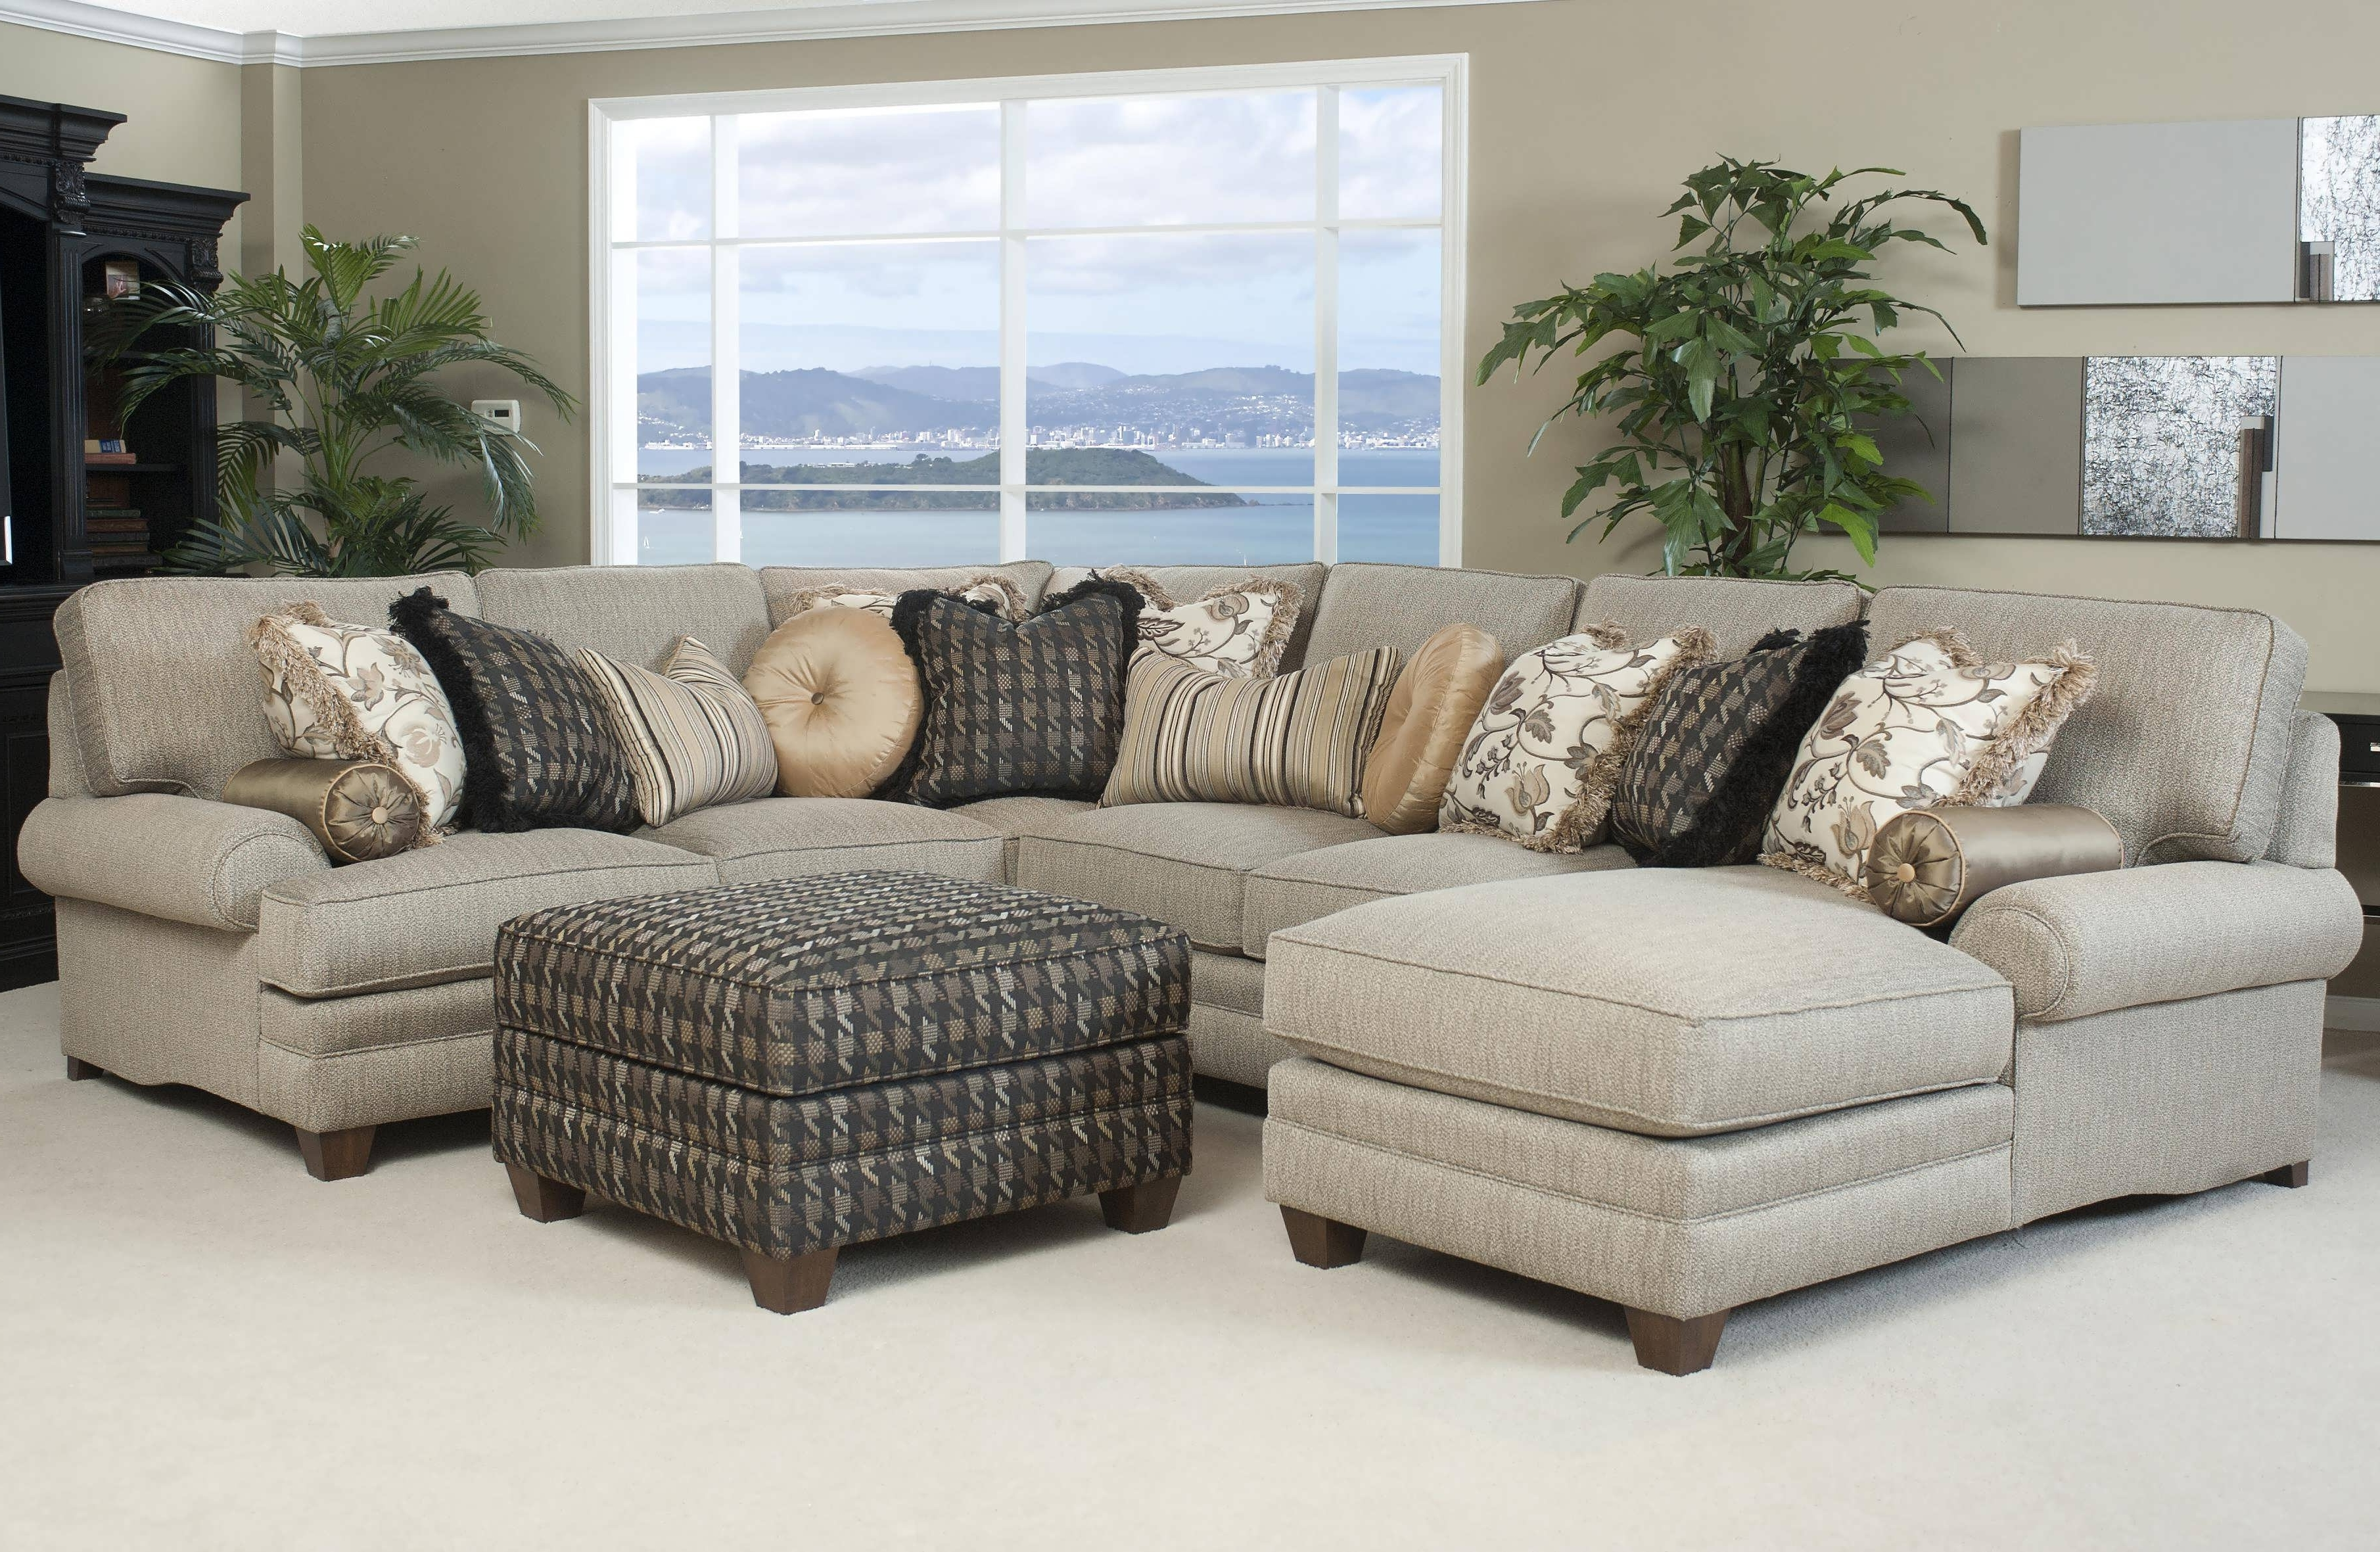 Sofa : Cheap Sectional Couch Small Sectionals For Sale Modern Inside Recent Grey Chaise Sectionals (View 11 of 15)